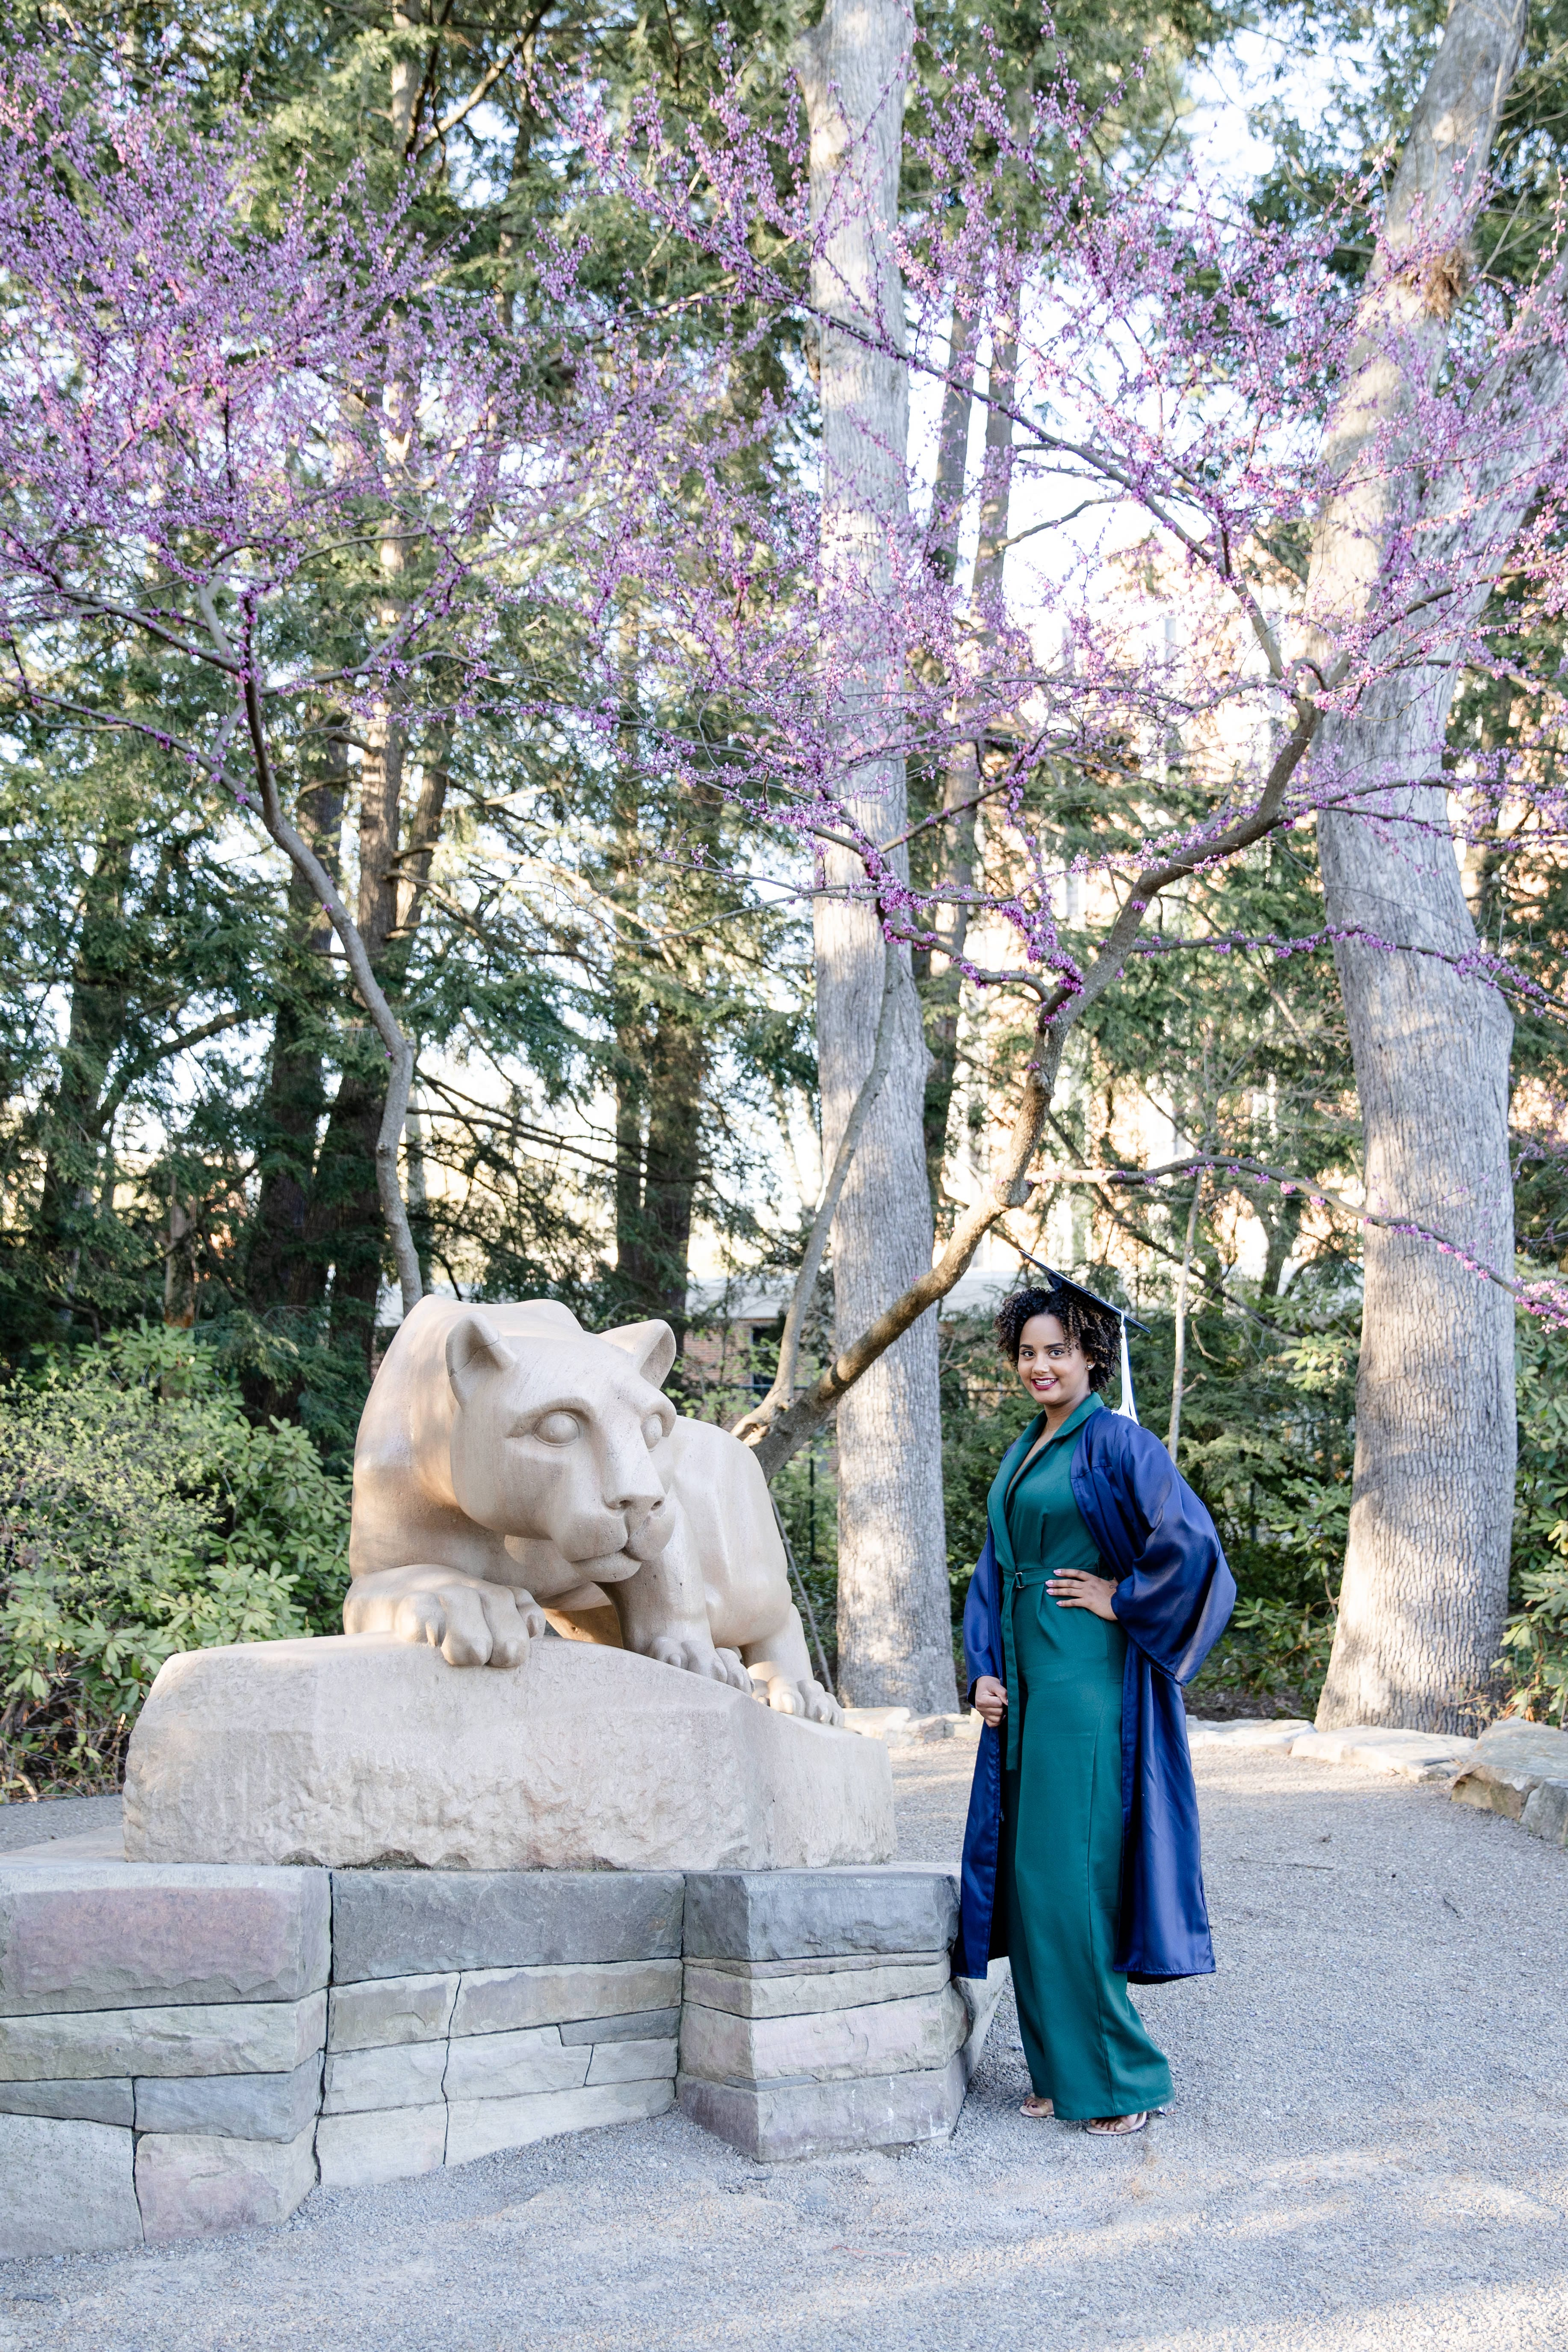 Class of 2020 Penn State graduate at Nittany lion shrine